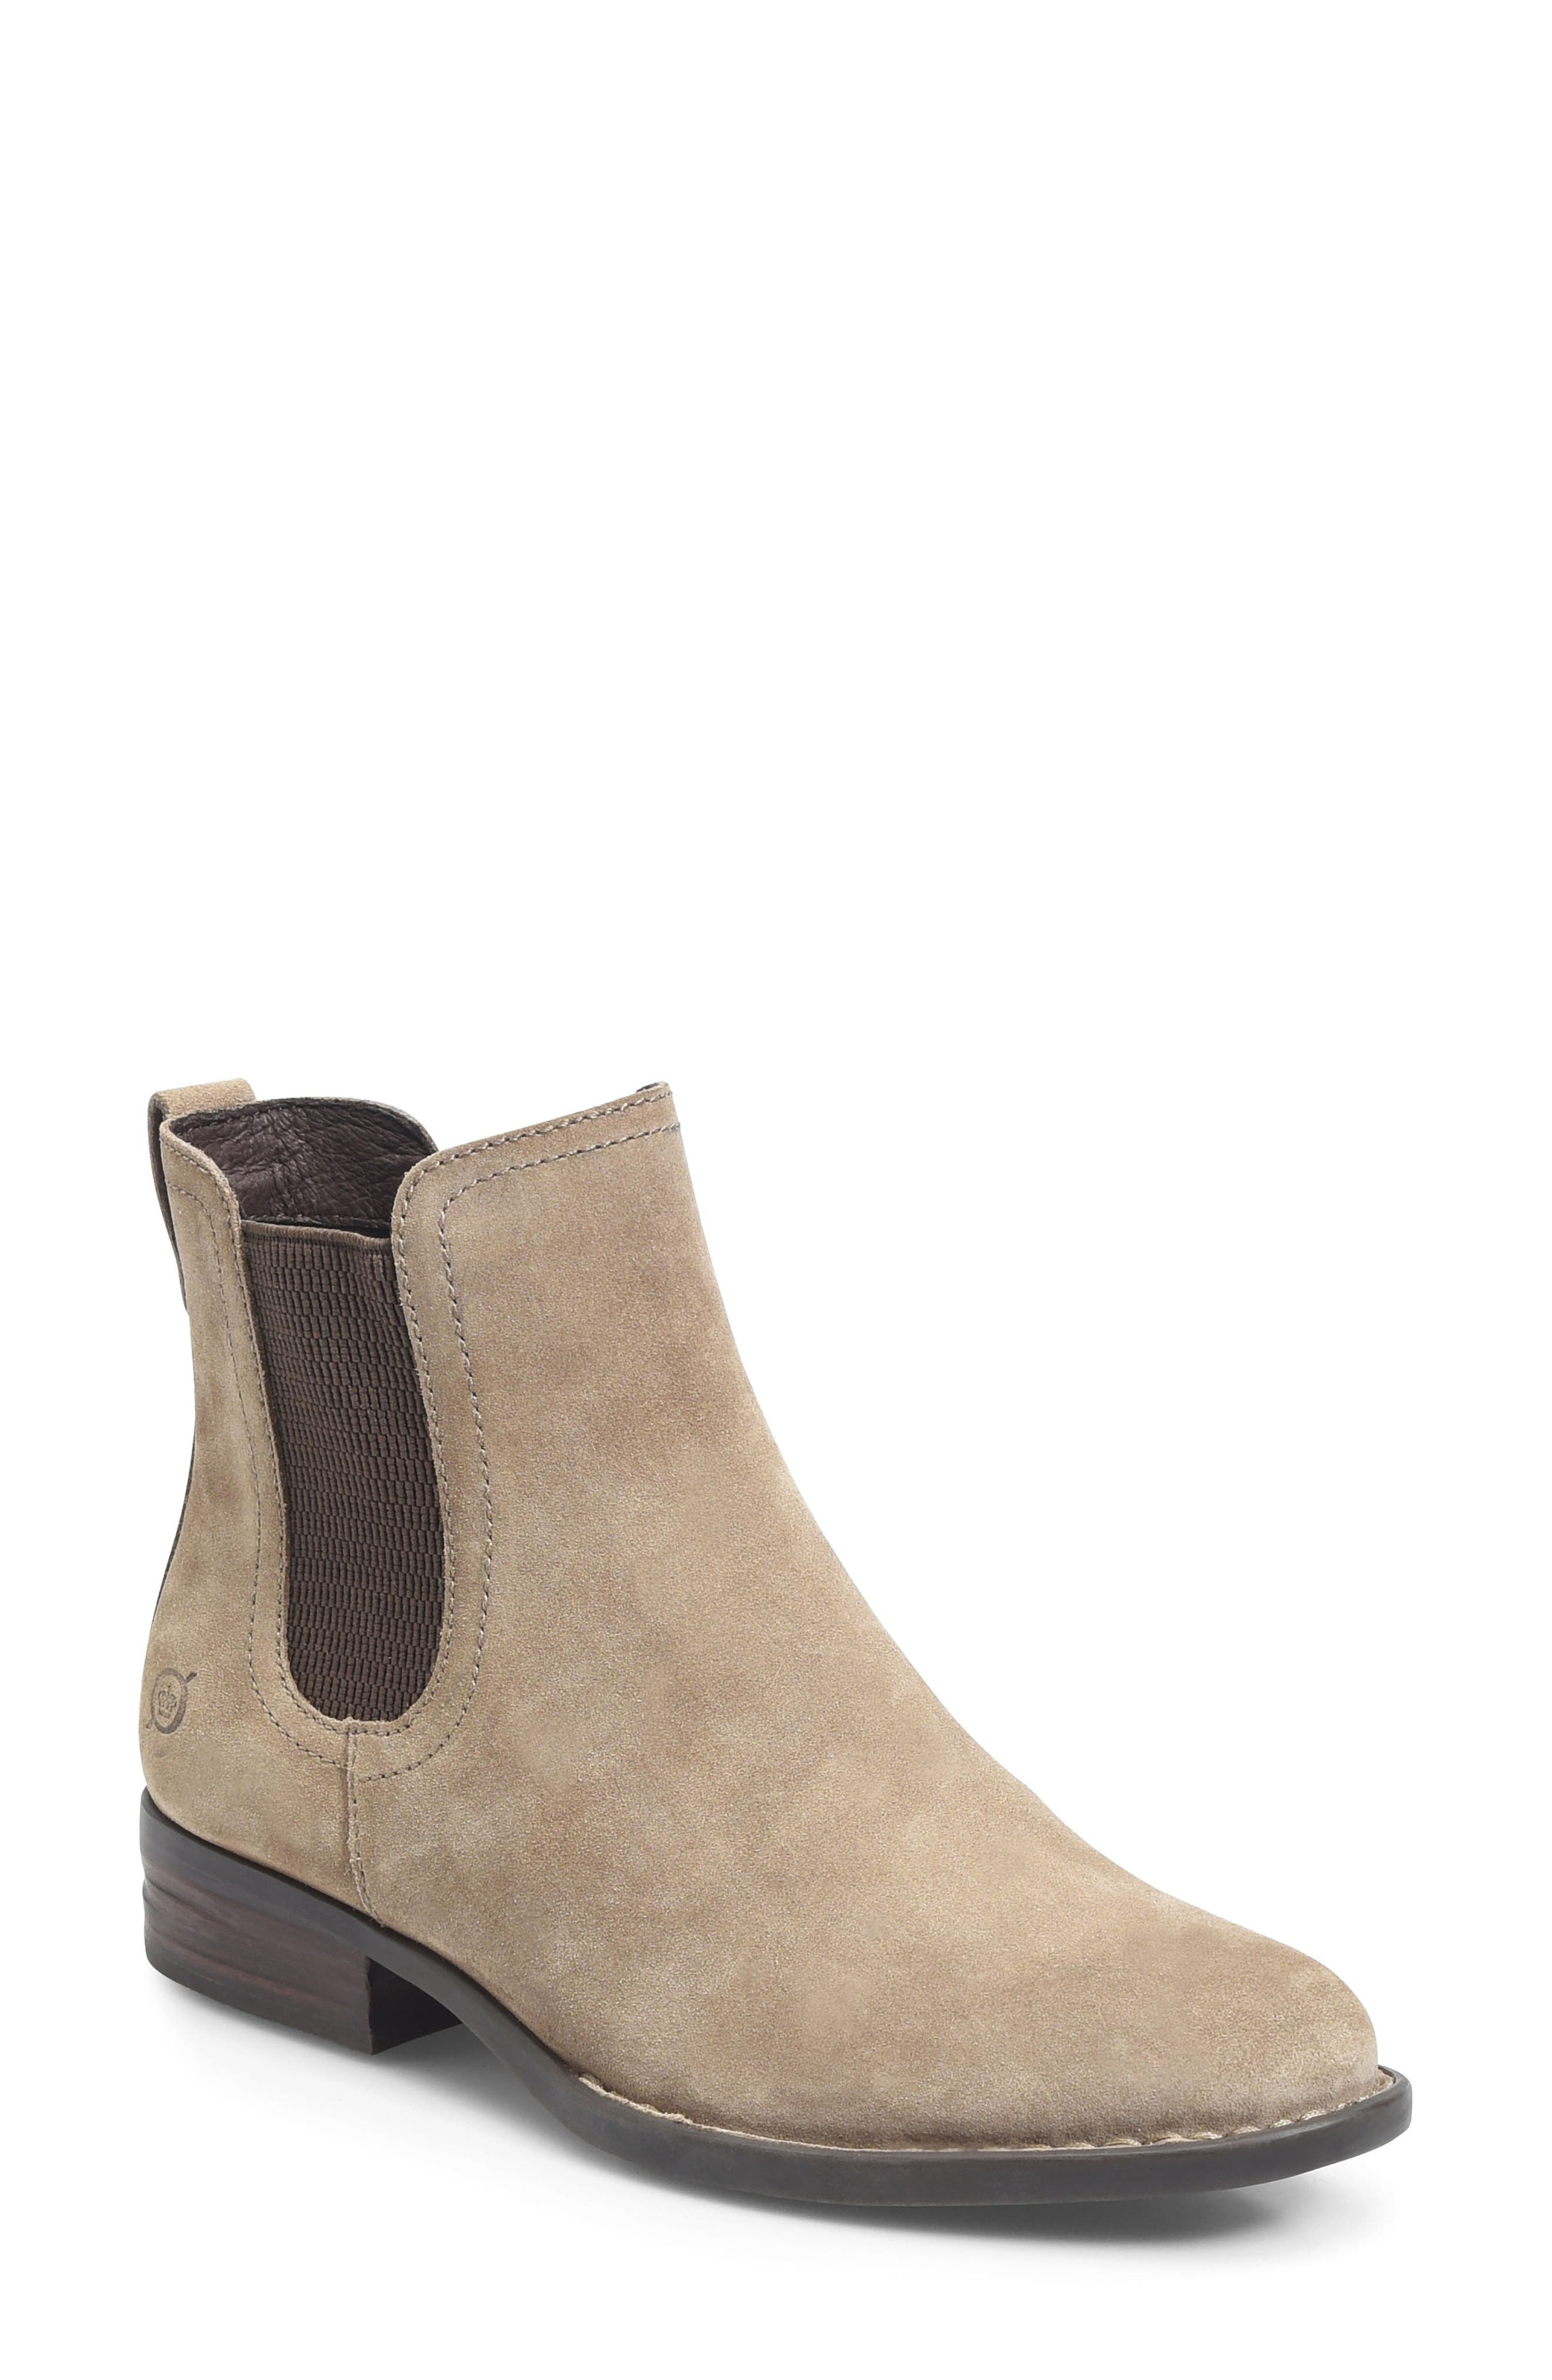 Casco Chelsea Boot,                         Main,                         color, Taupe Suede